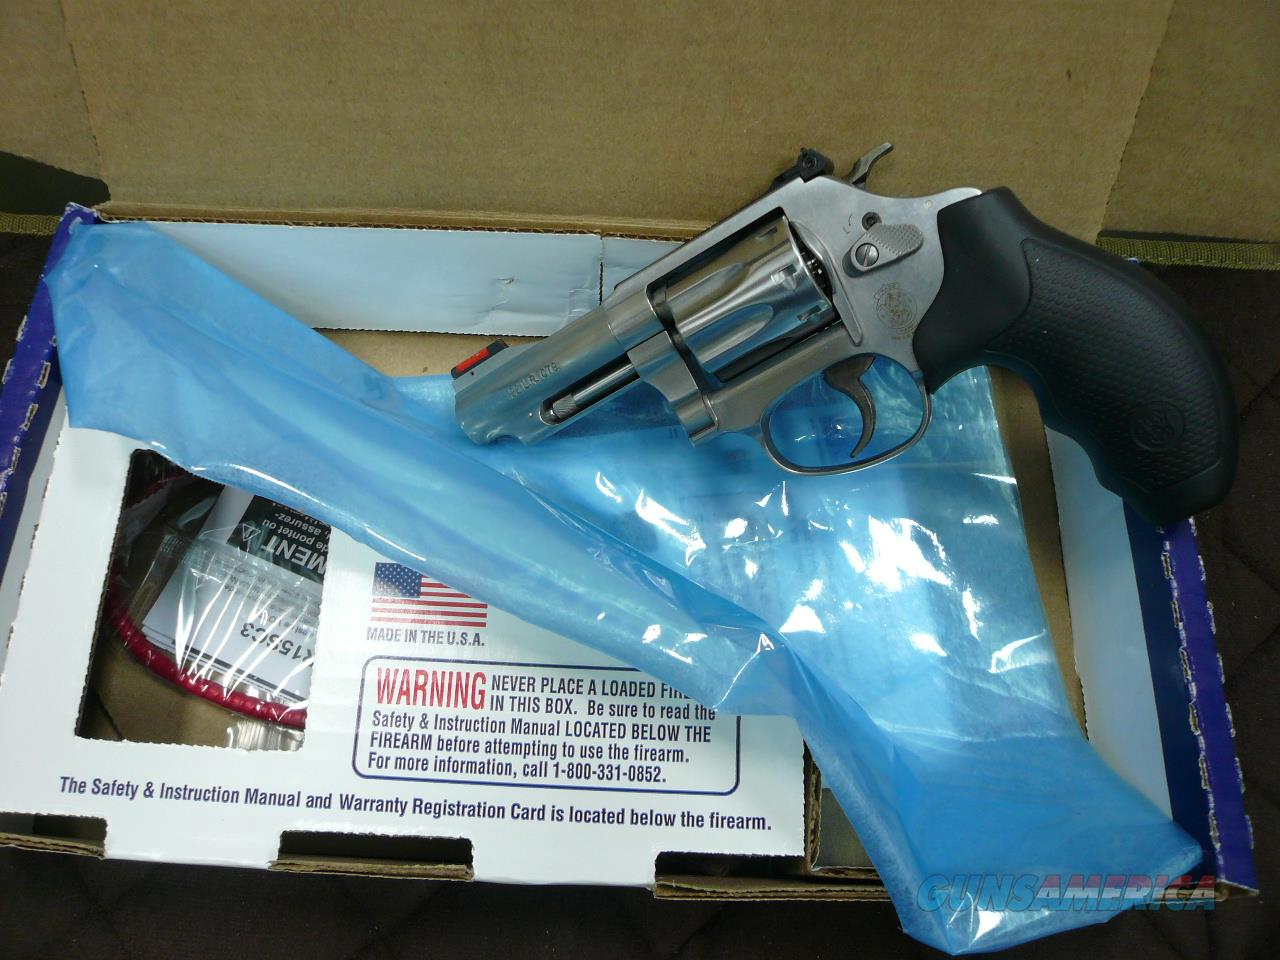 "63-5 3"" 22LR NIB  Guns > Pistols > Smith & Wesson Revolvers > Full Frame Revolver"